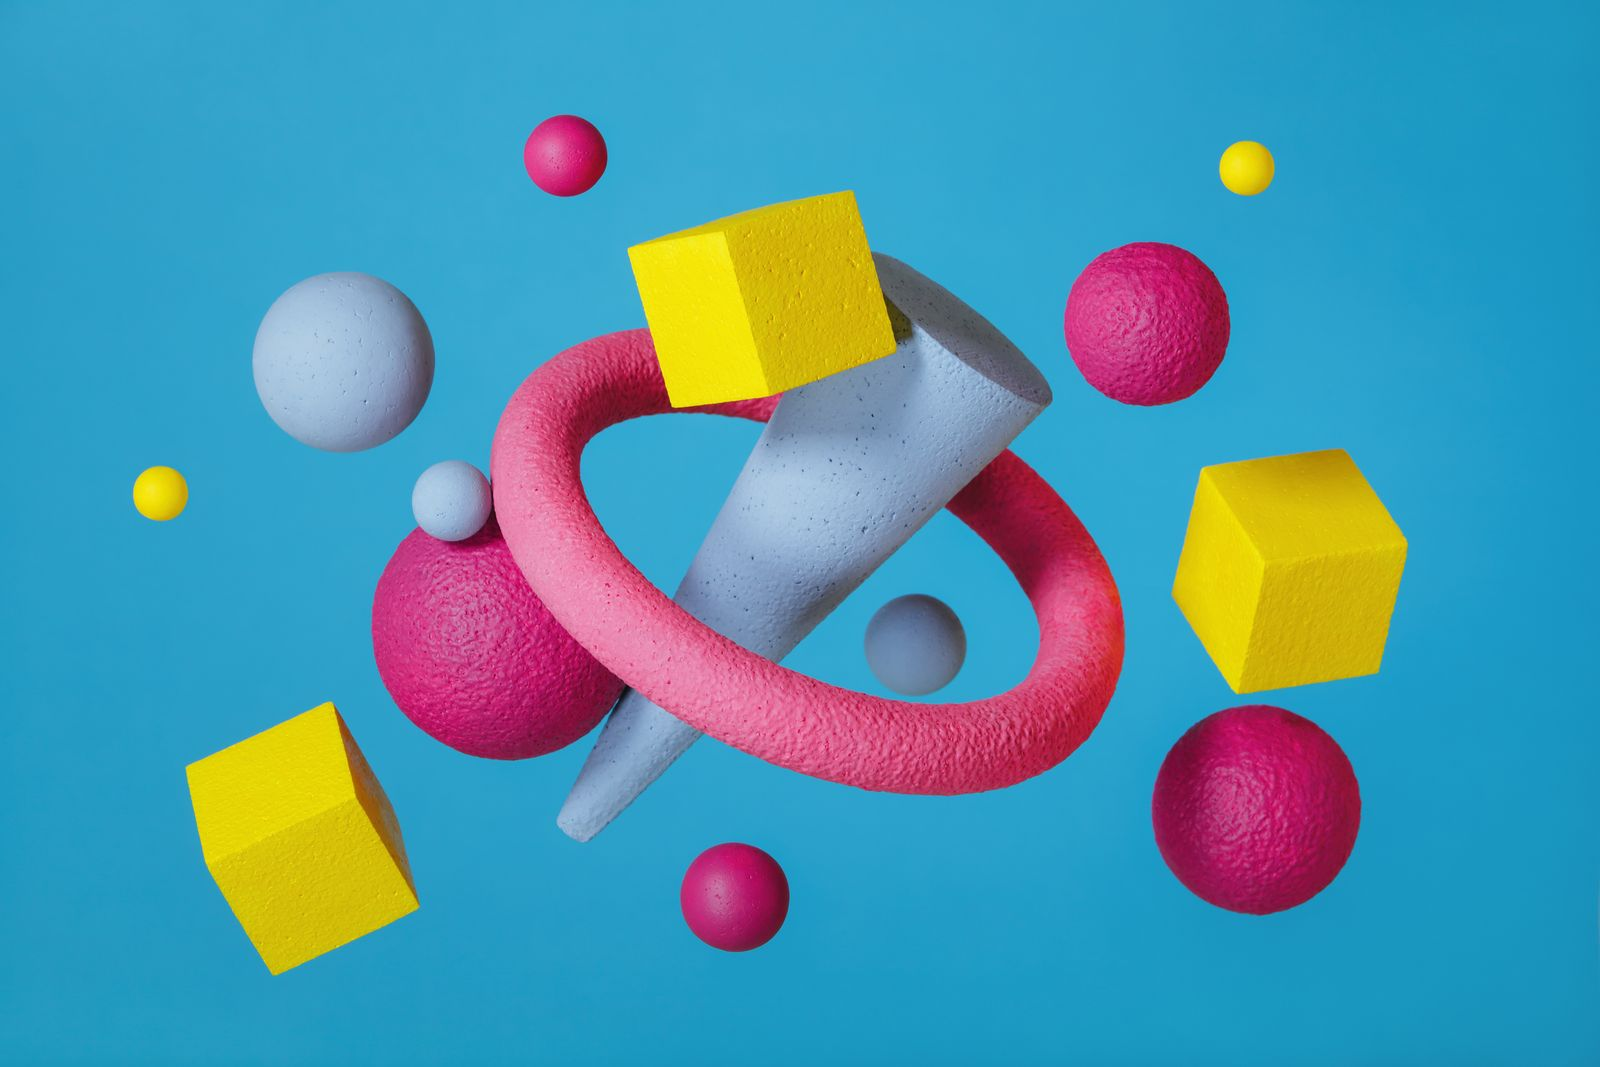 Abstract multi-colored objects on blue background